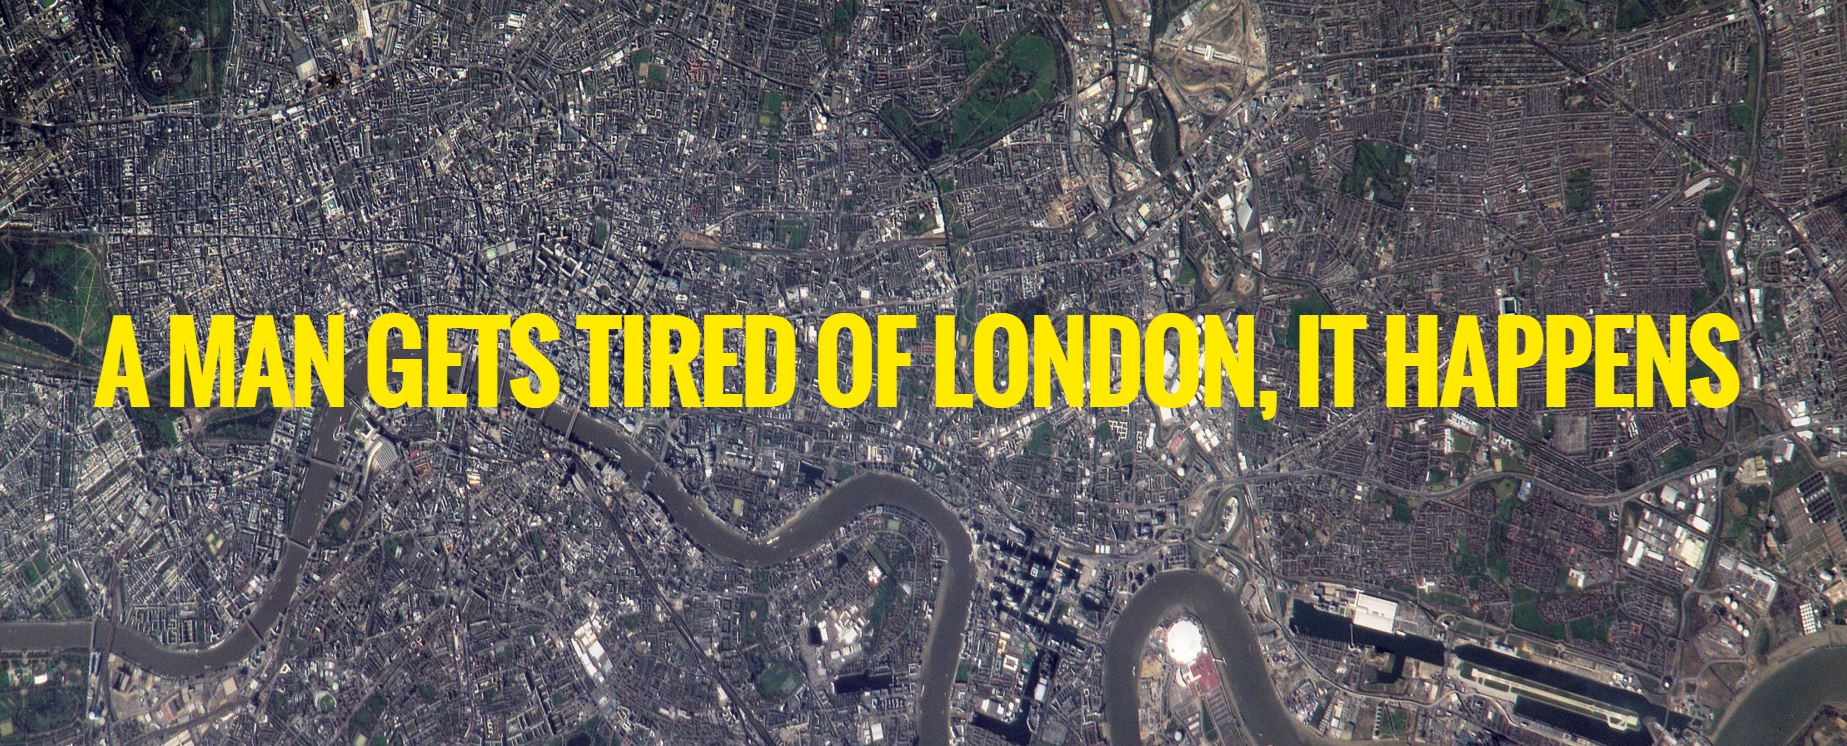 tired of london-header